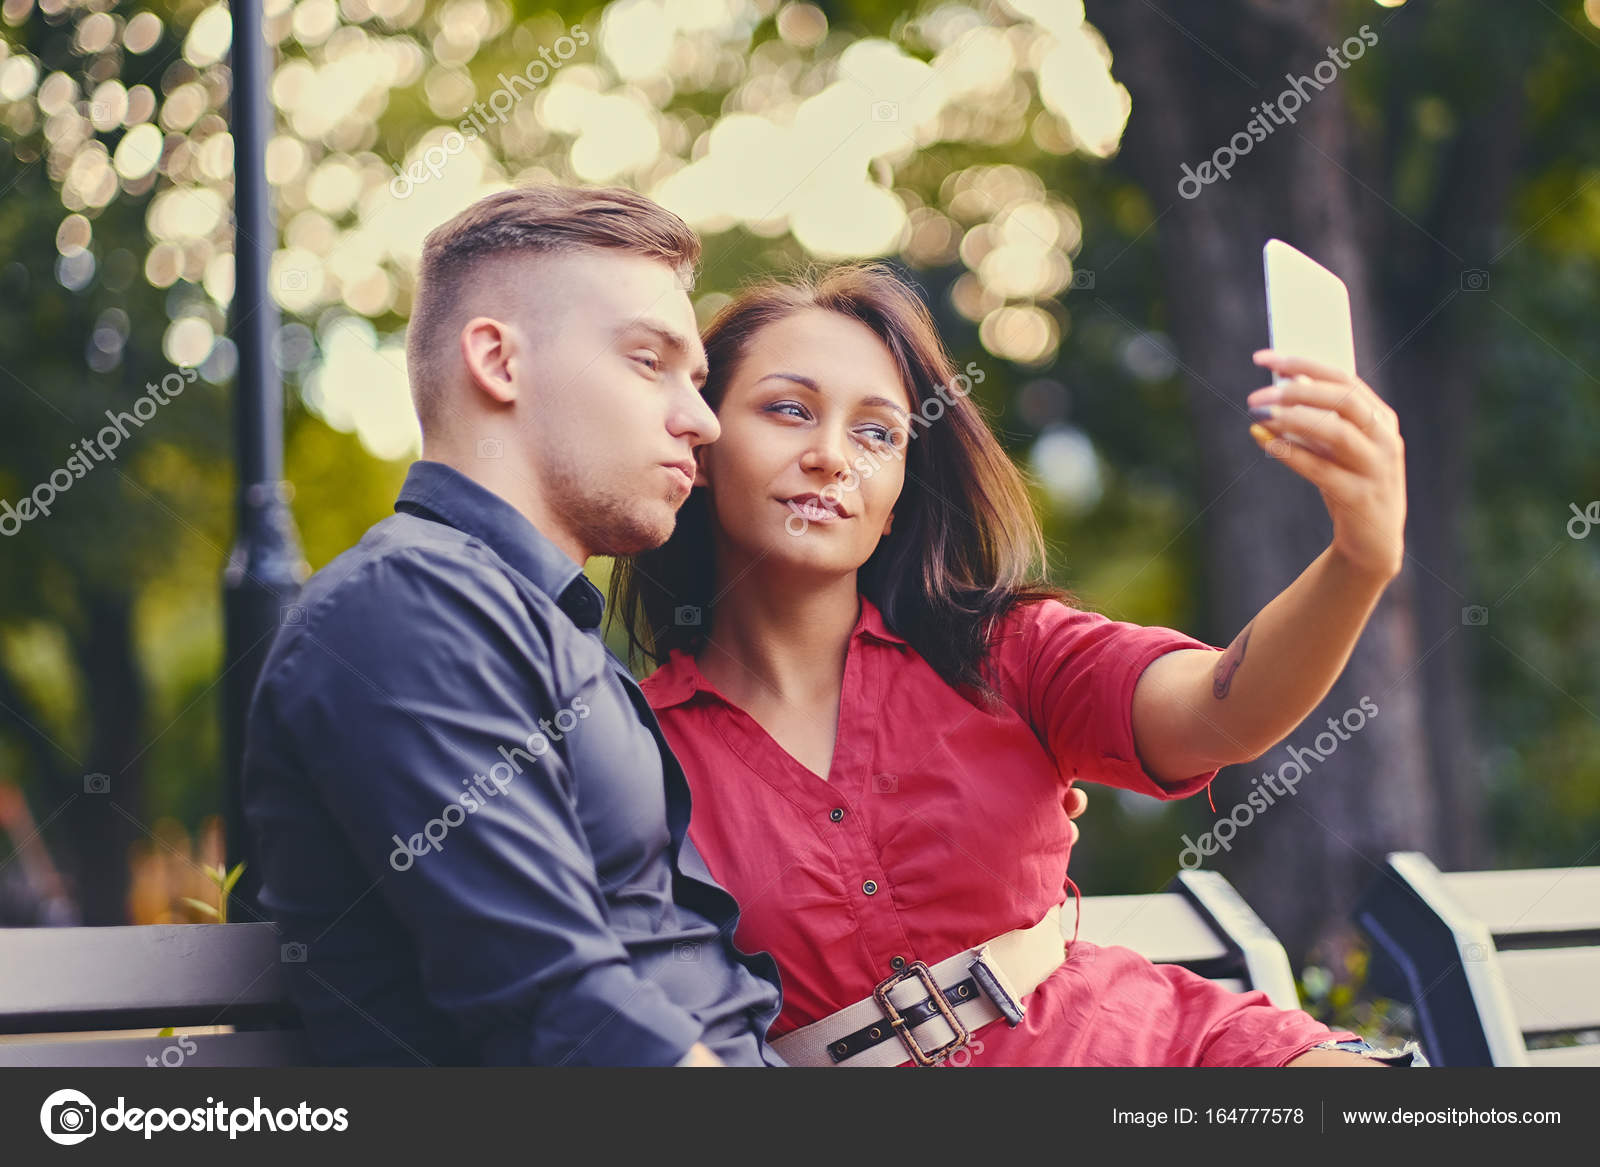 Instant messaging dating